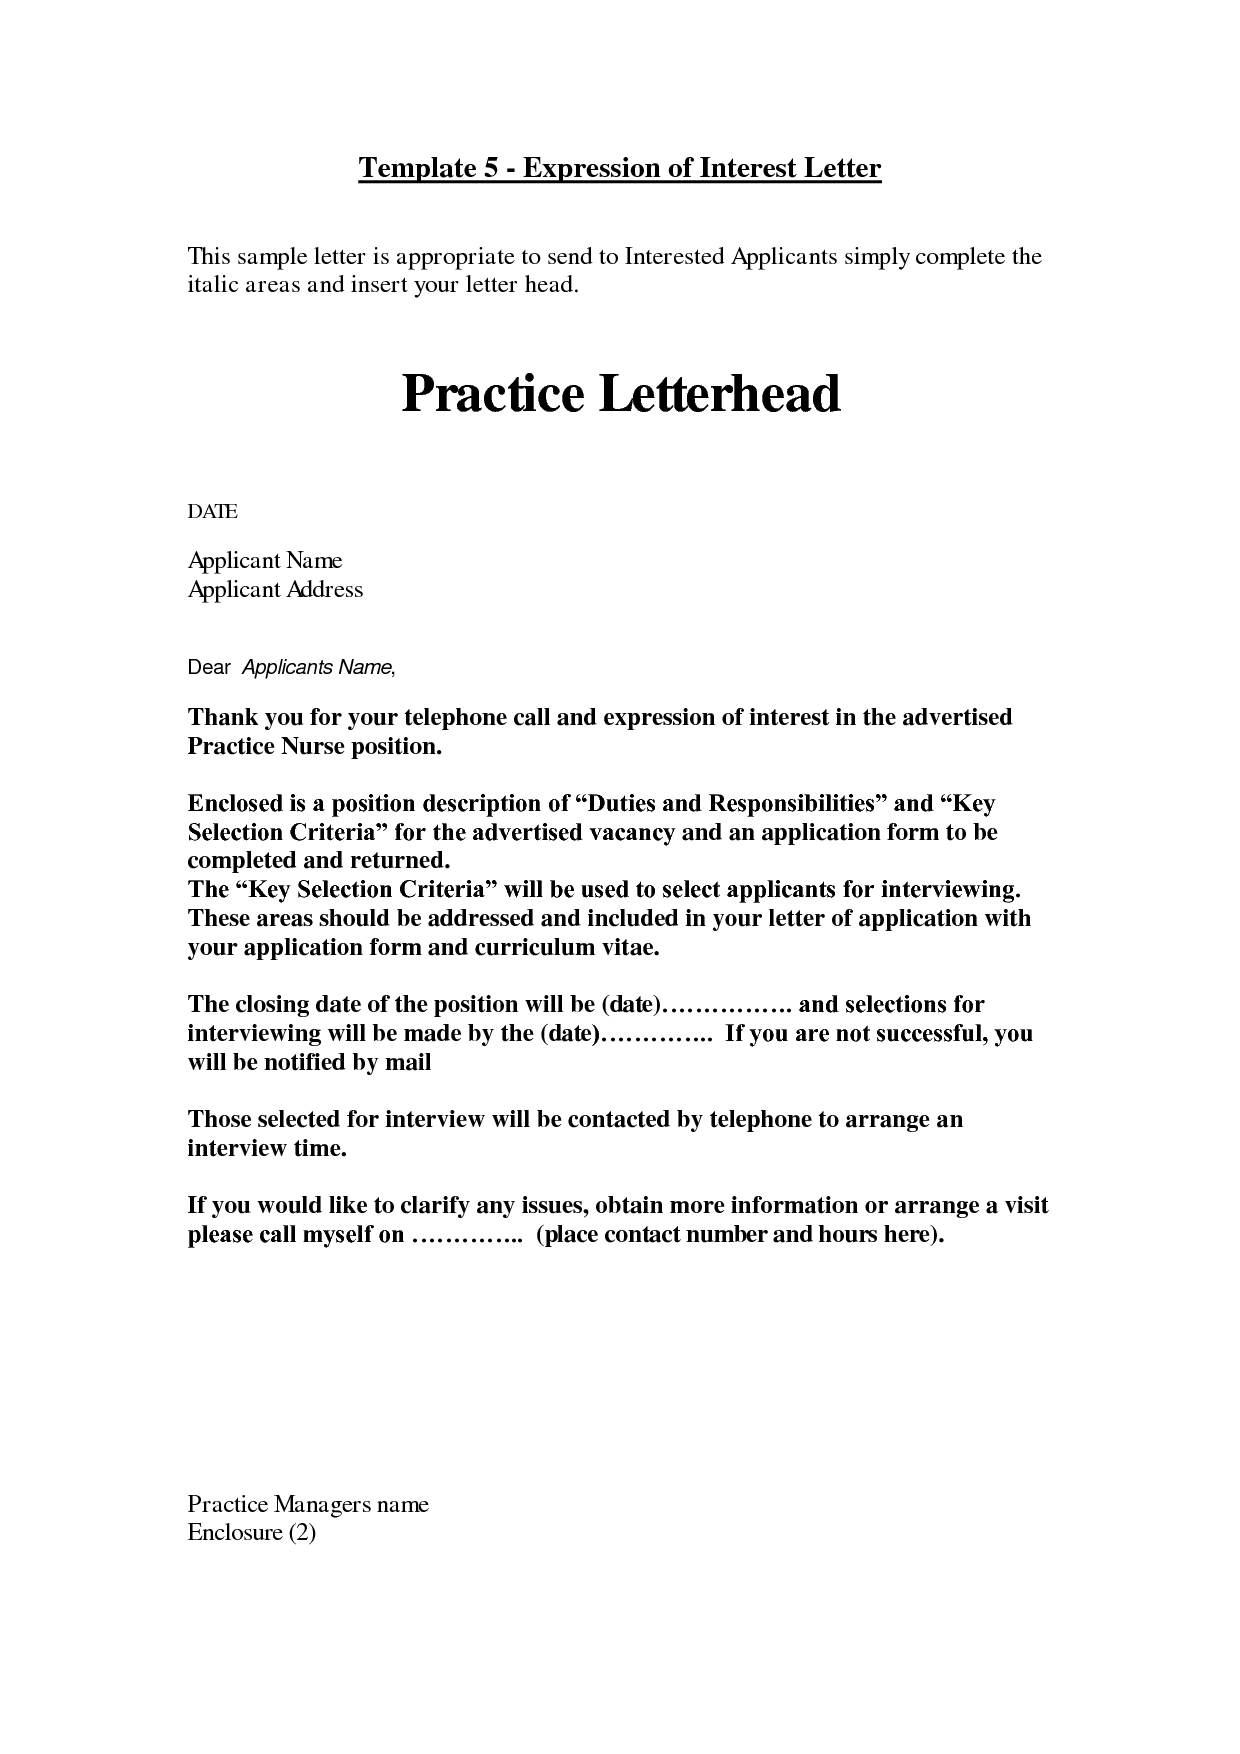 How to write a expression of interest letter cover letter for Express of interest cover letter